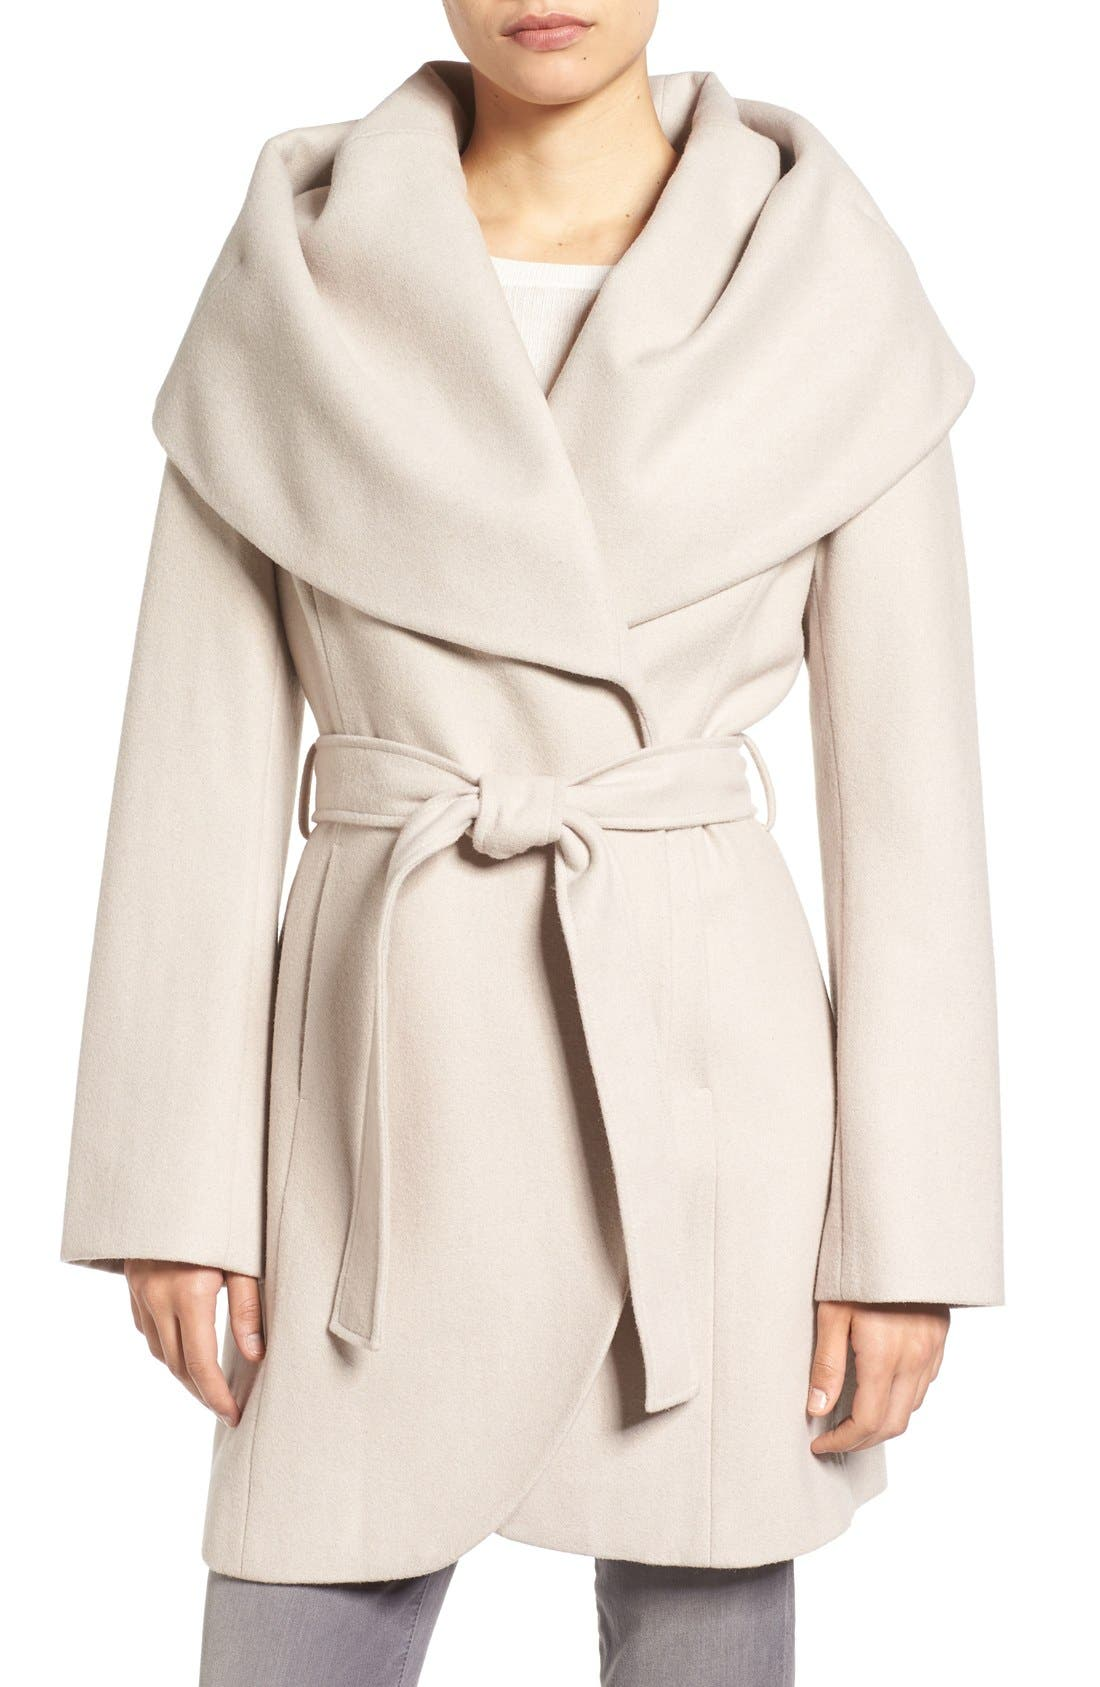 Alternate Image 1 Selected - T Tahari Wool Blend Belted Wrap Coat